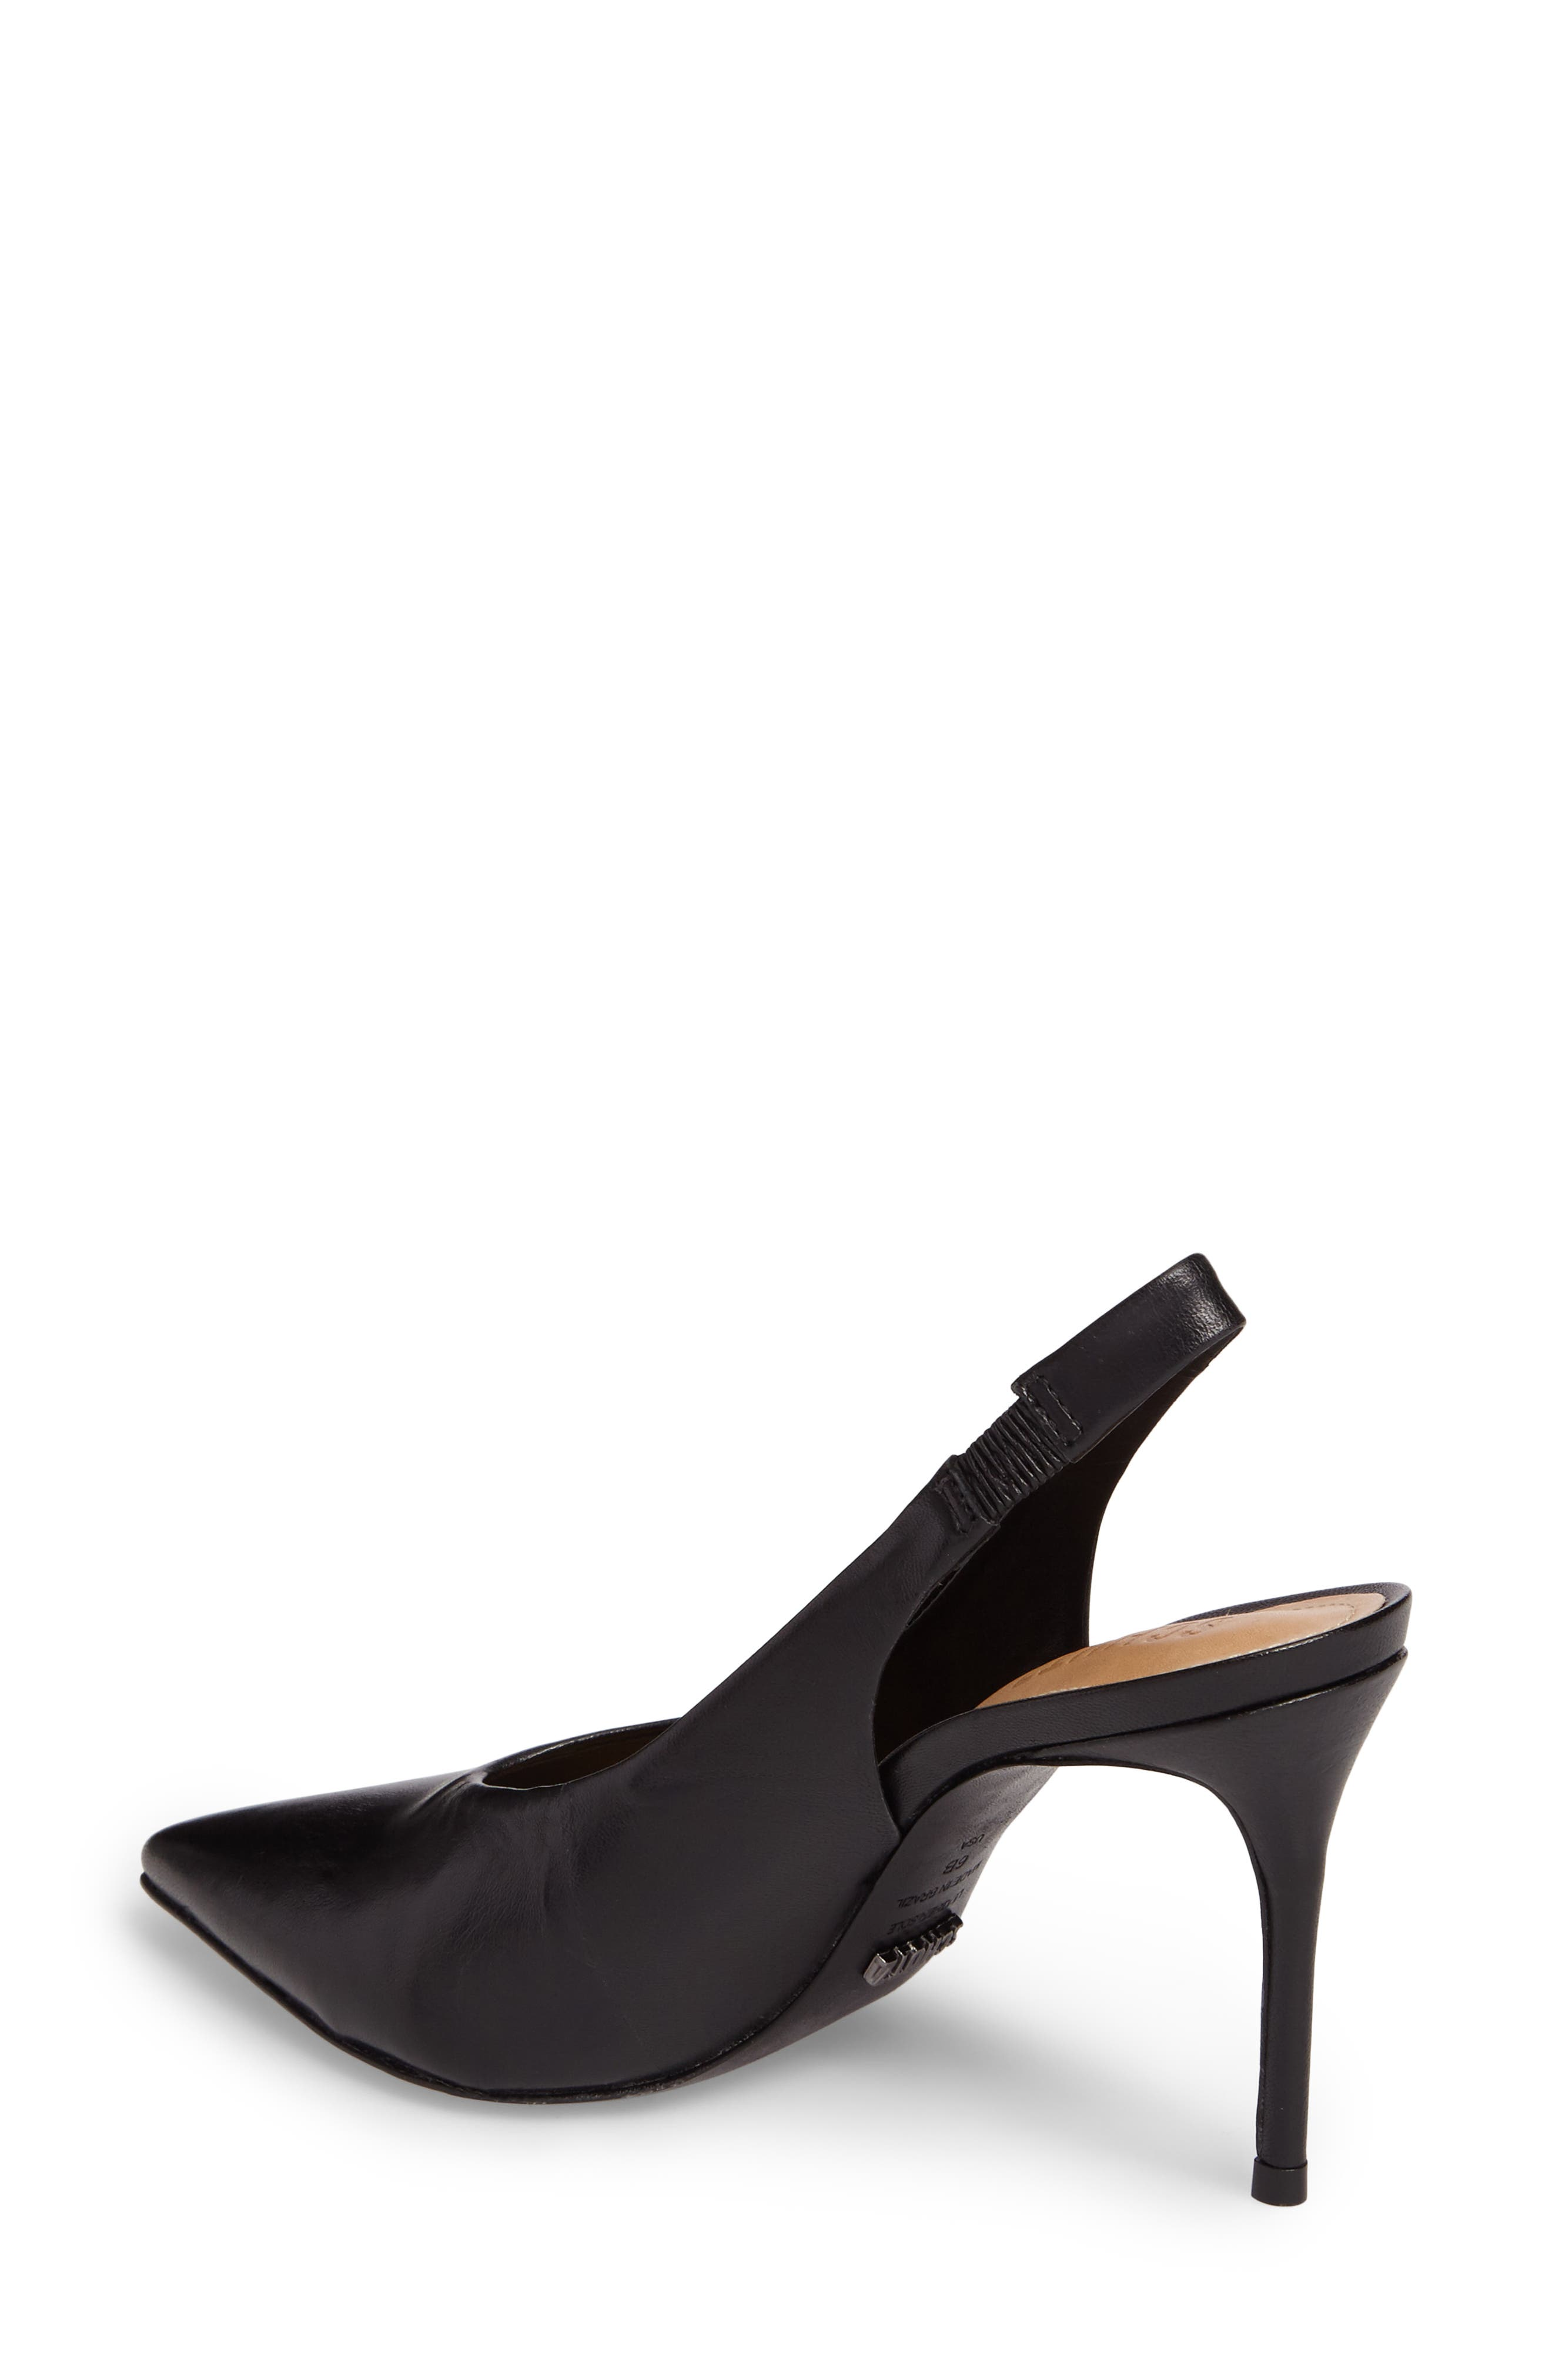 Phisalis Slingback Pump,                             Alternate thumbnail 2, color,                             Black Mestico Leather